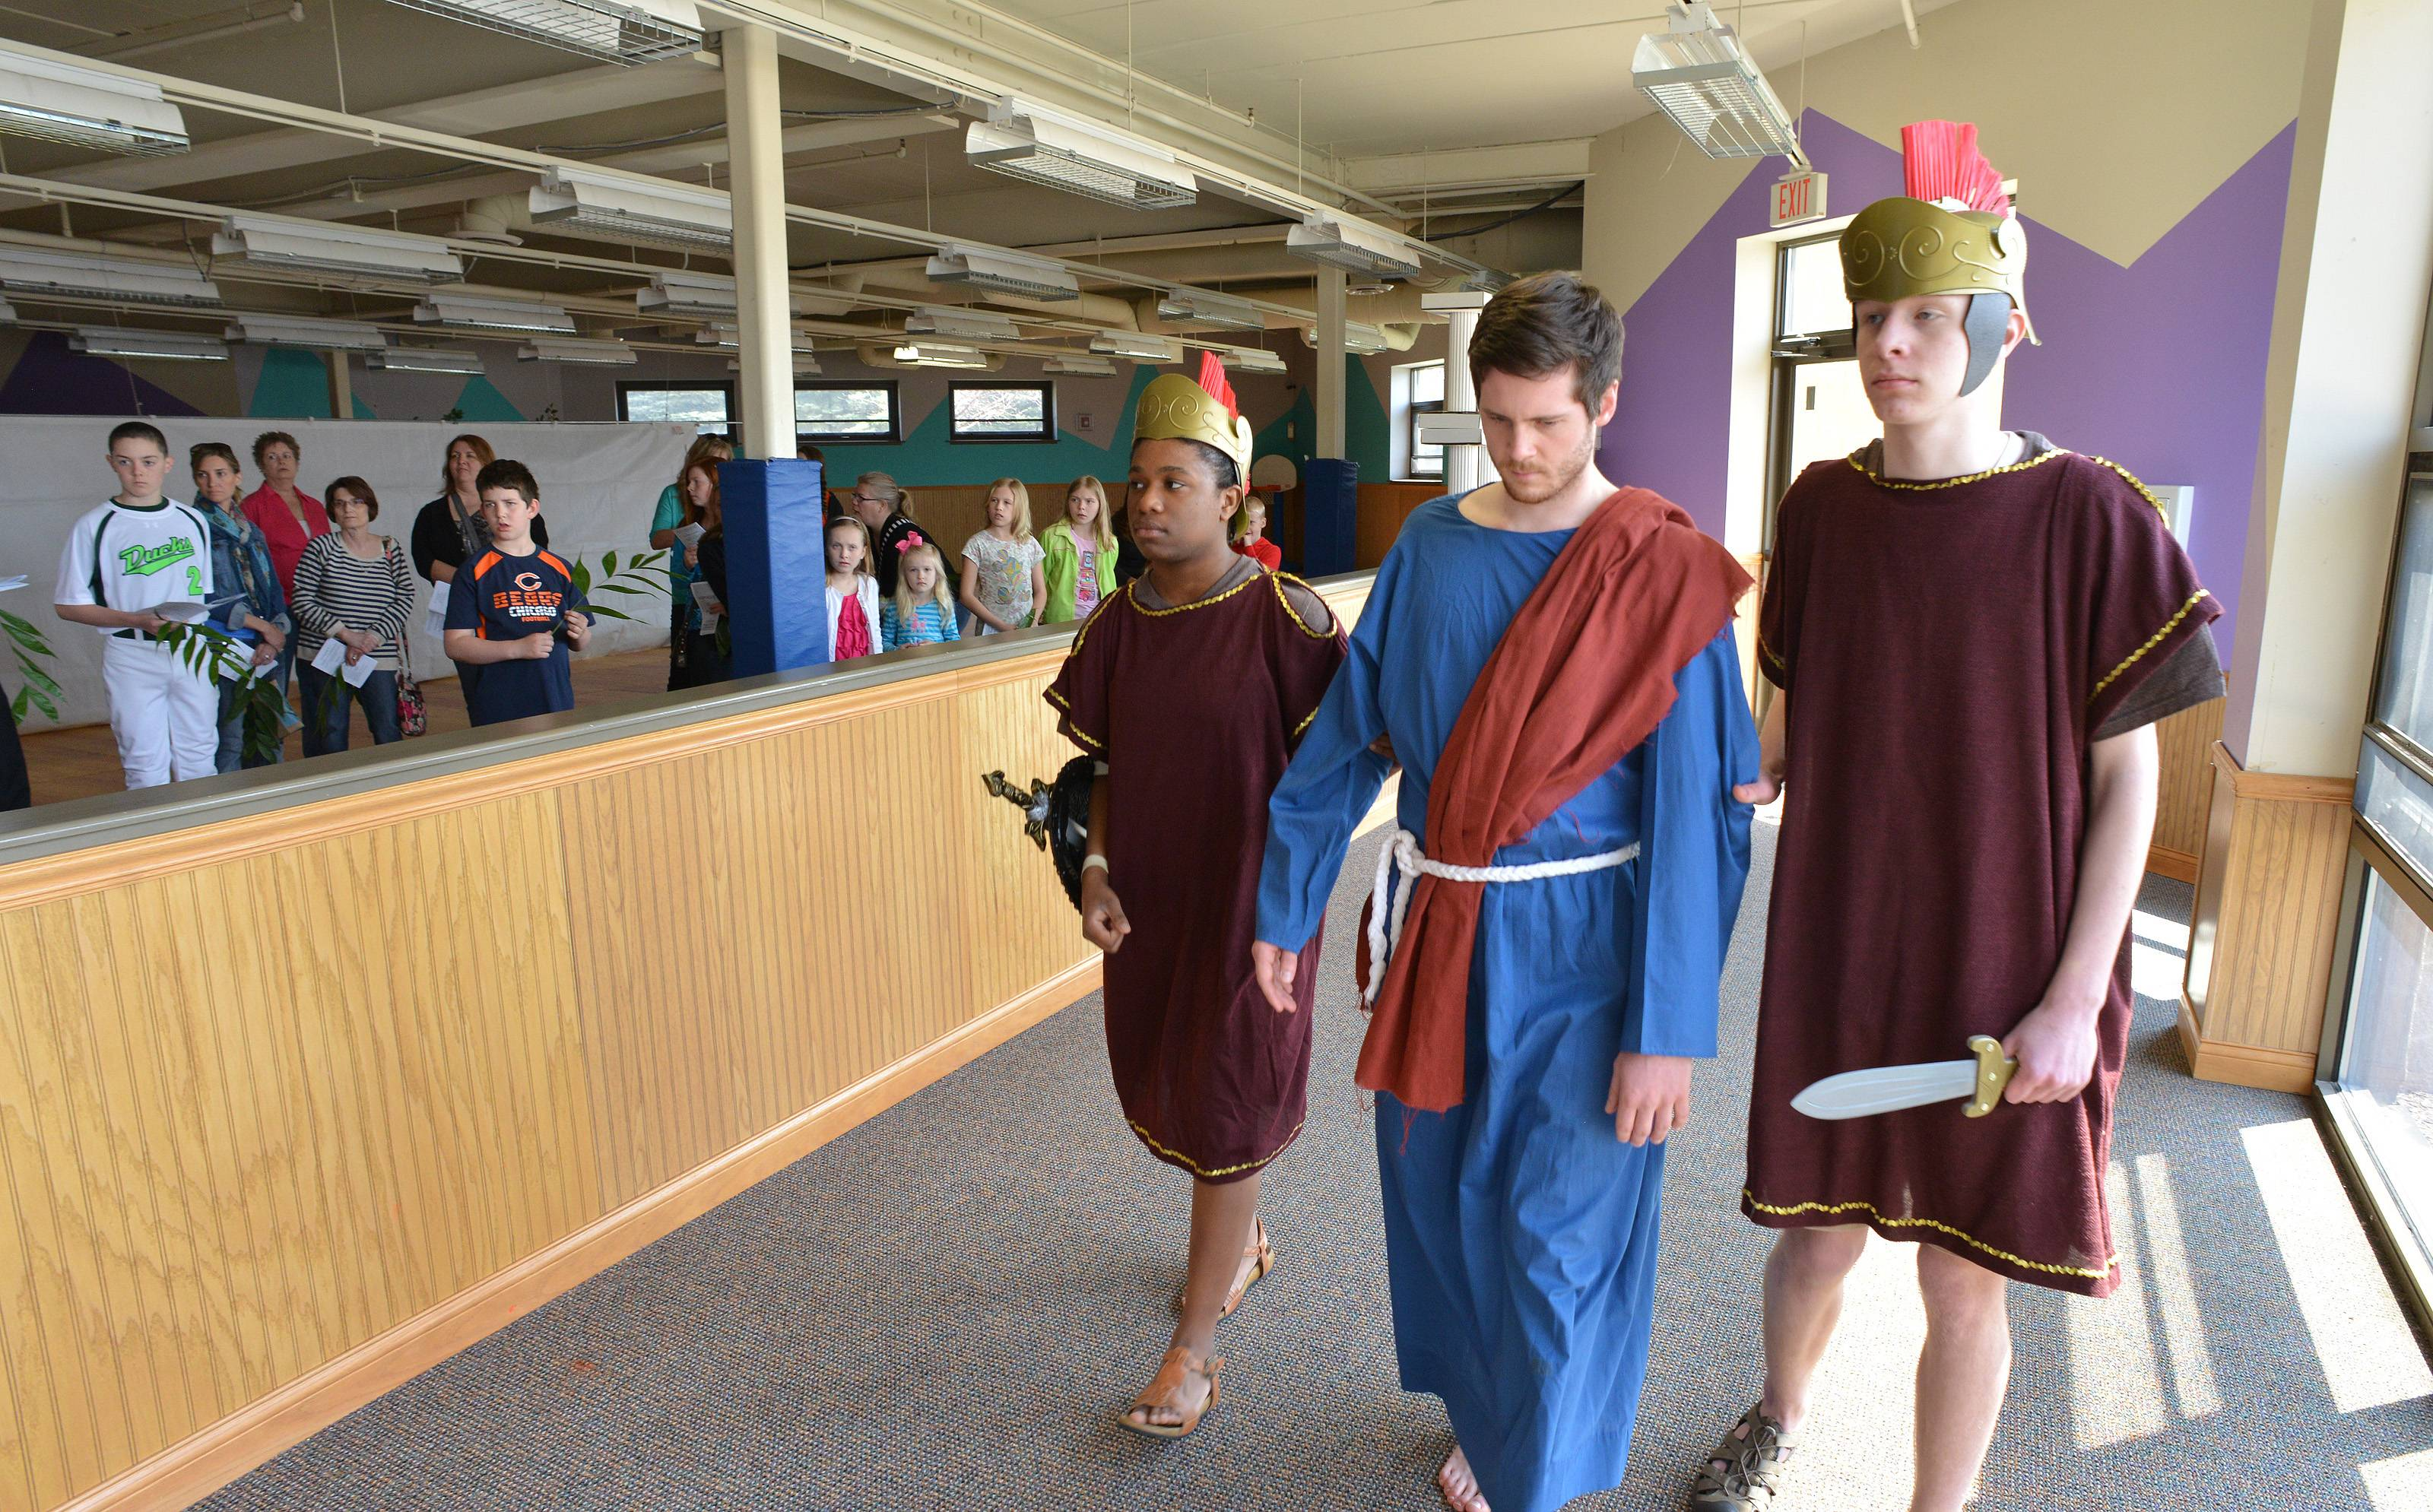 After his arrest, Jesus is led away for trial by two Roman Guards. Left to right, the actors are Taya Finch, Conor Hughes and Nick Duesing.